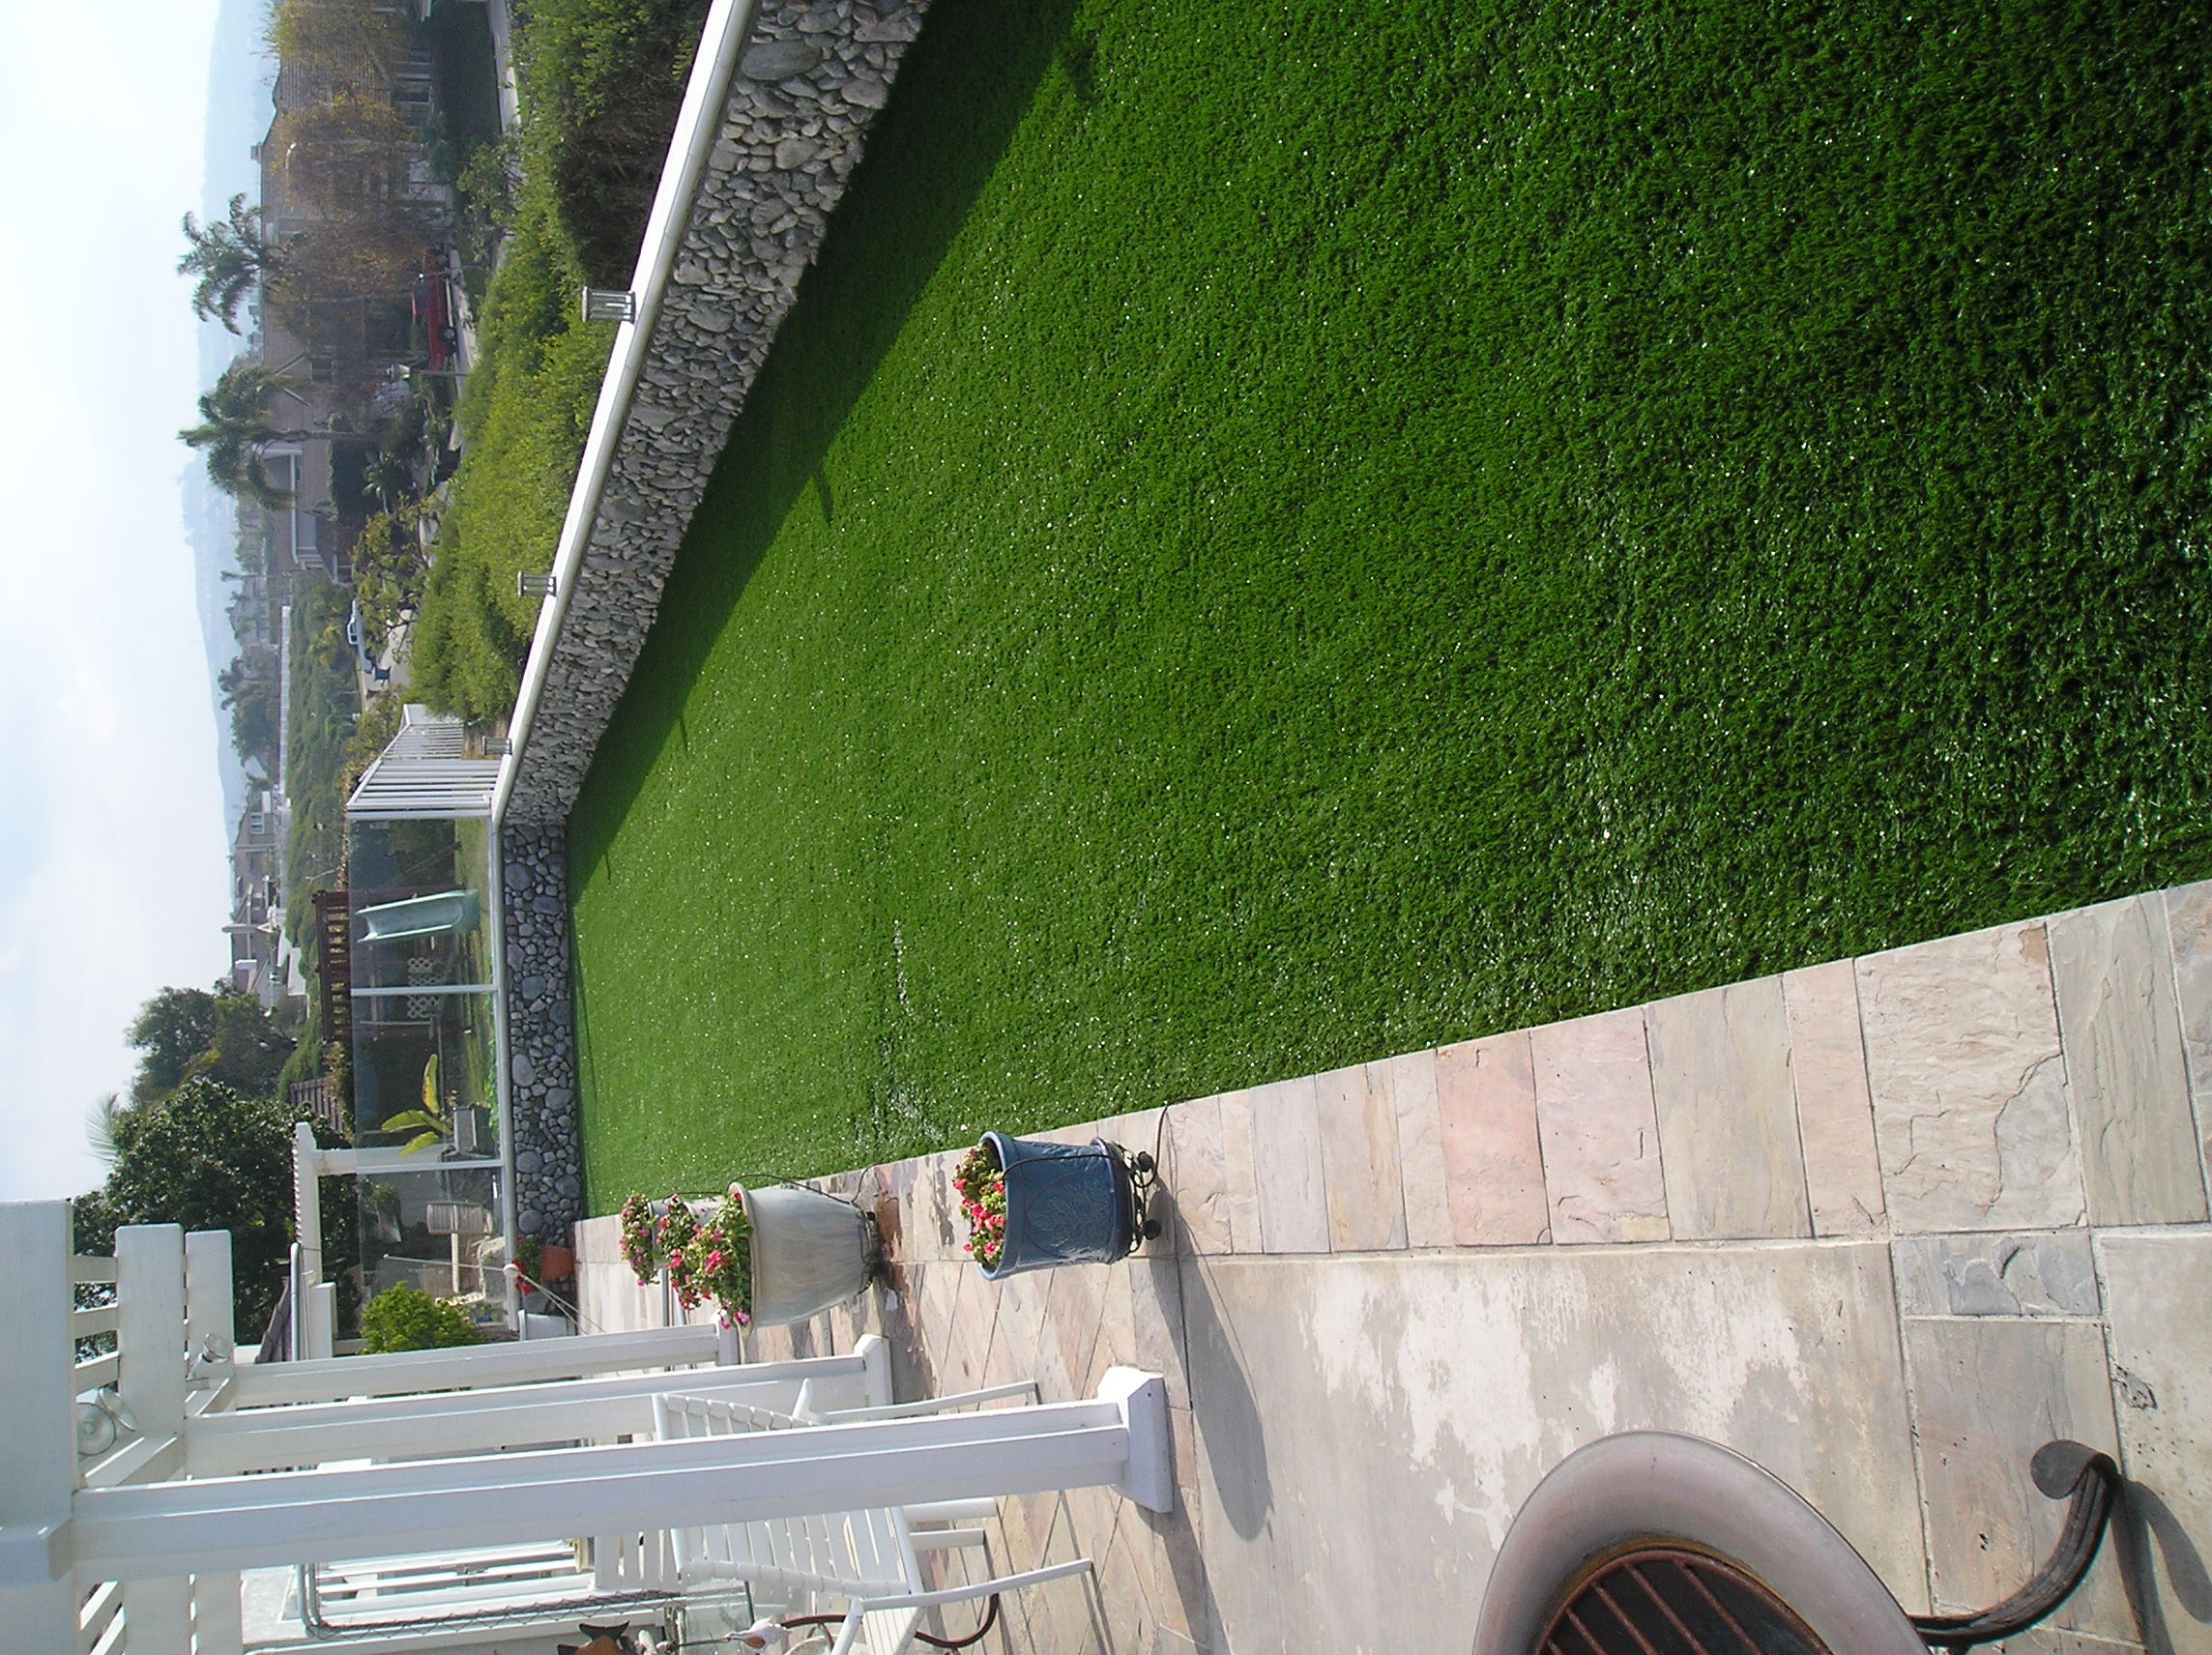 Cashmere 40 fake lawn cost,pet friendly artificial grass,fake lawn cost,pet friendly artificial grass